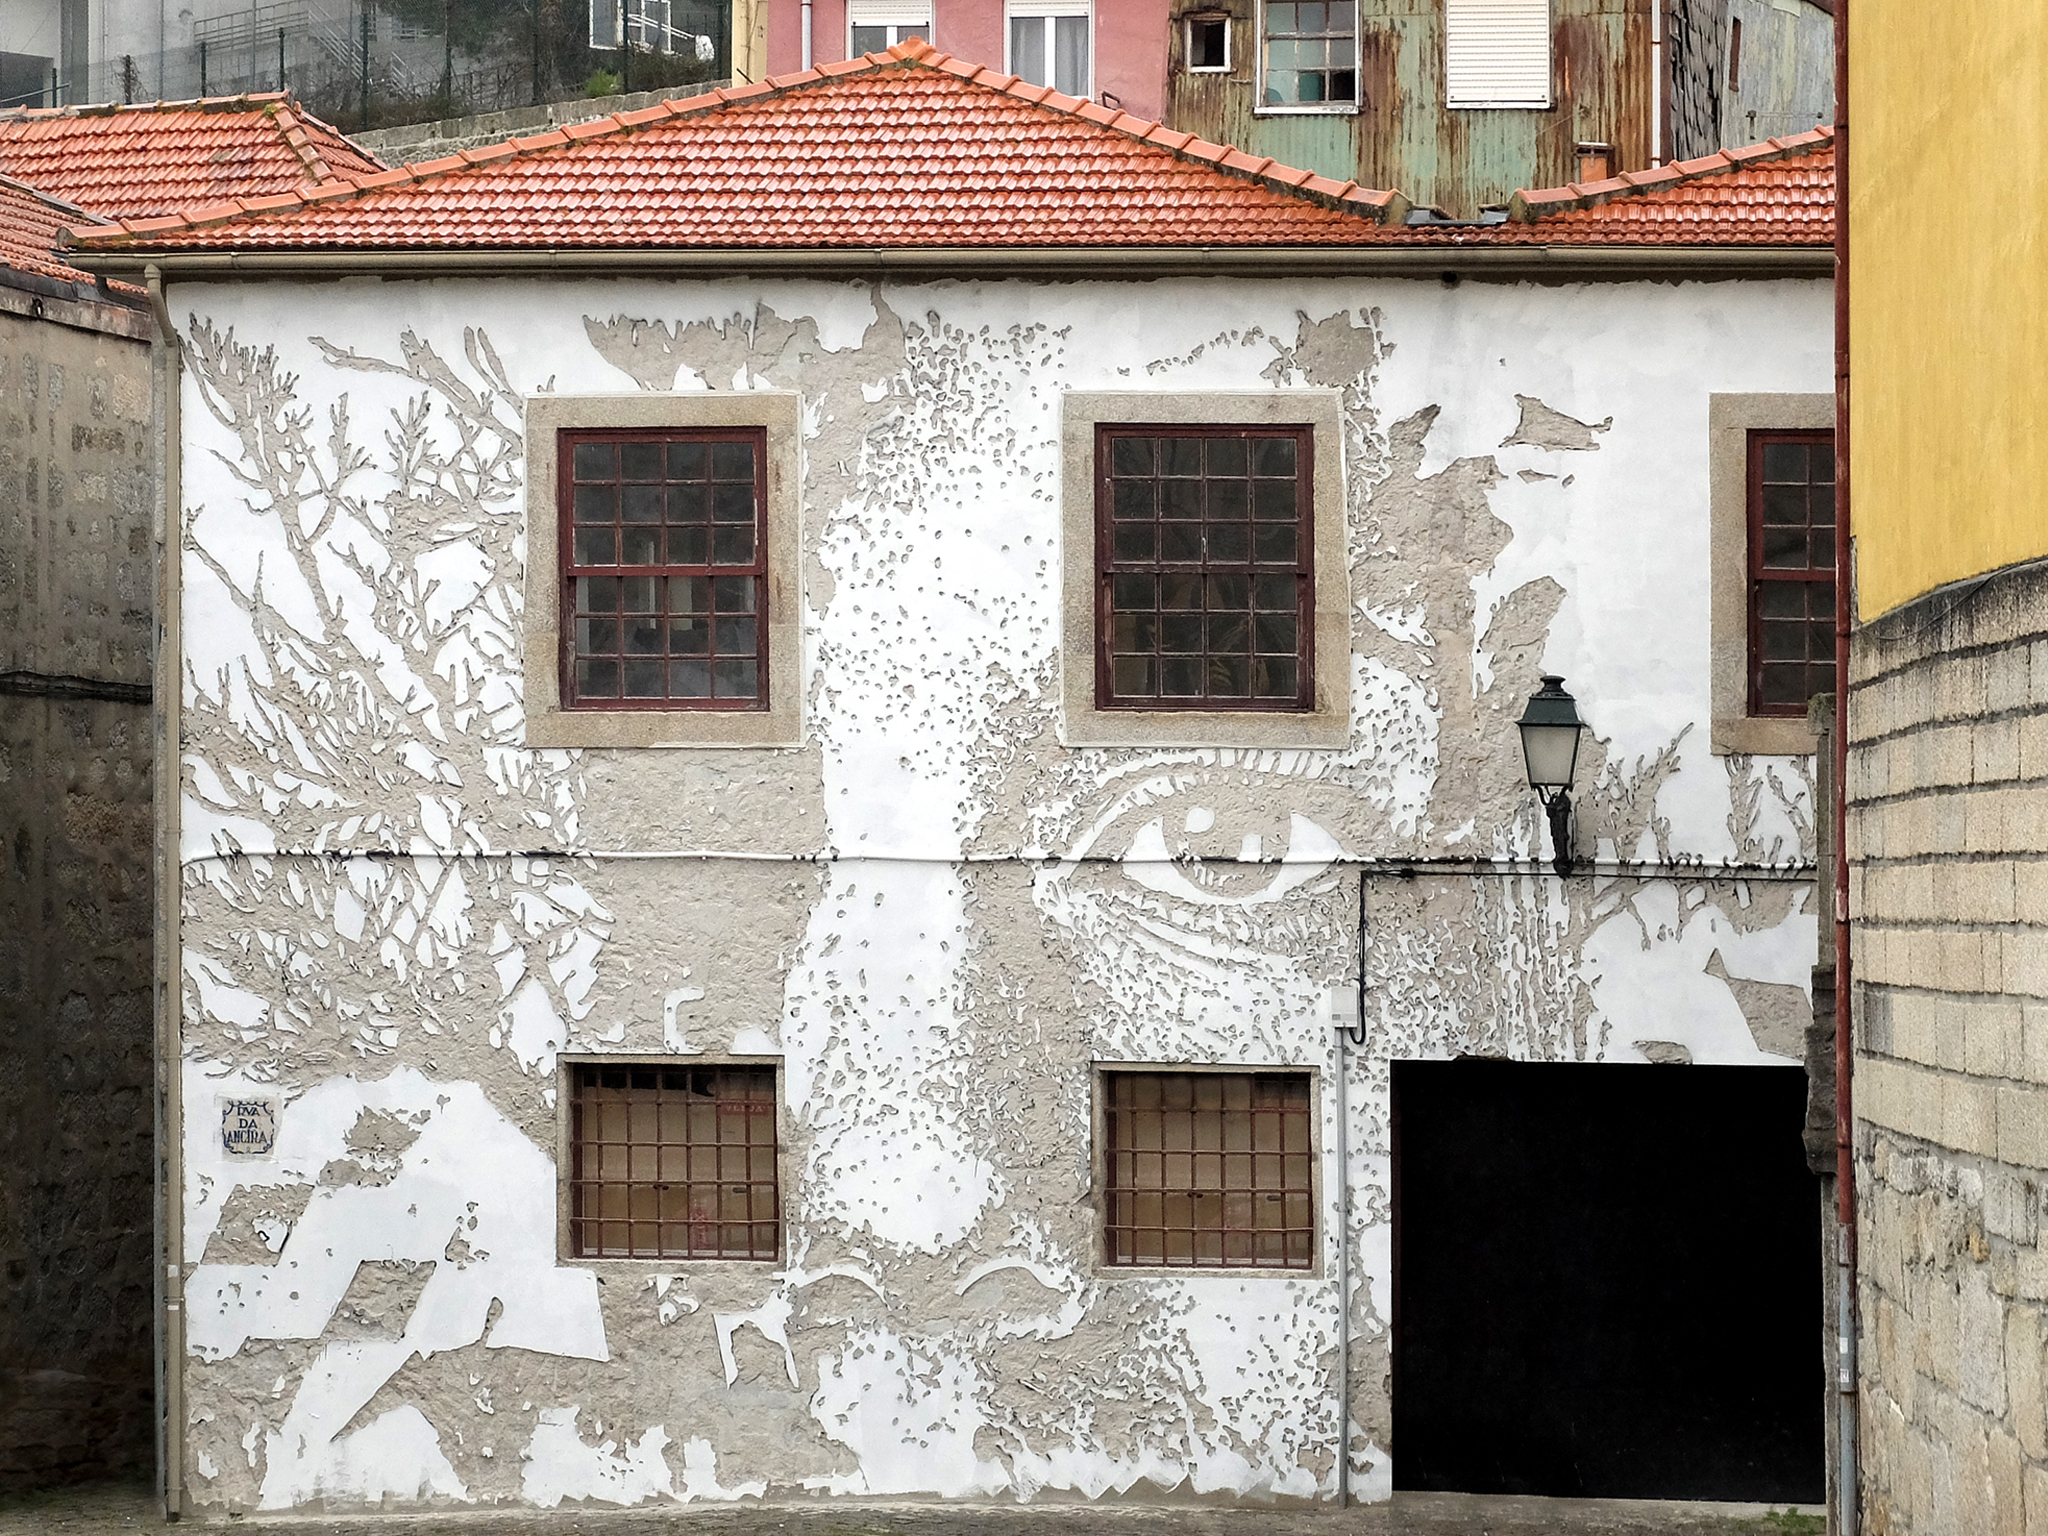 Vhils - Look at Porto